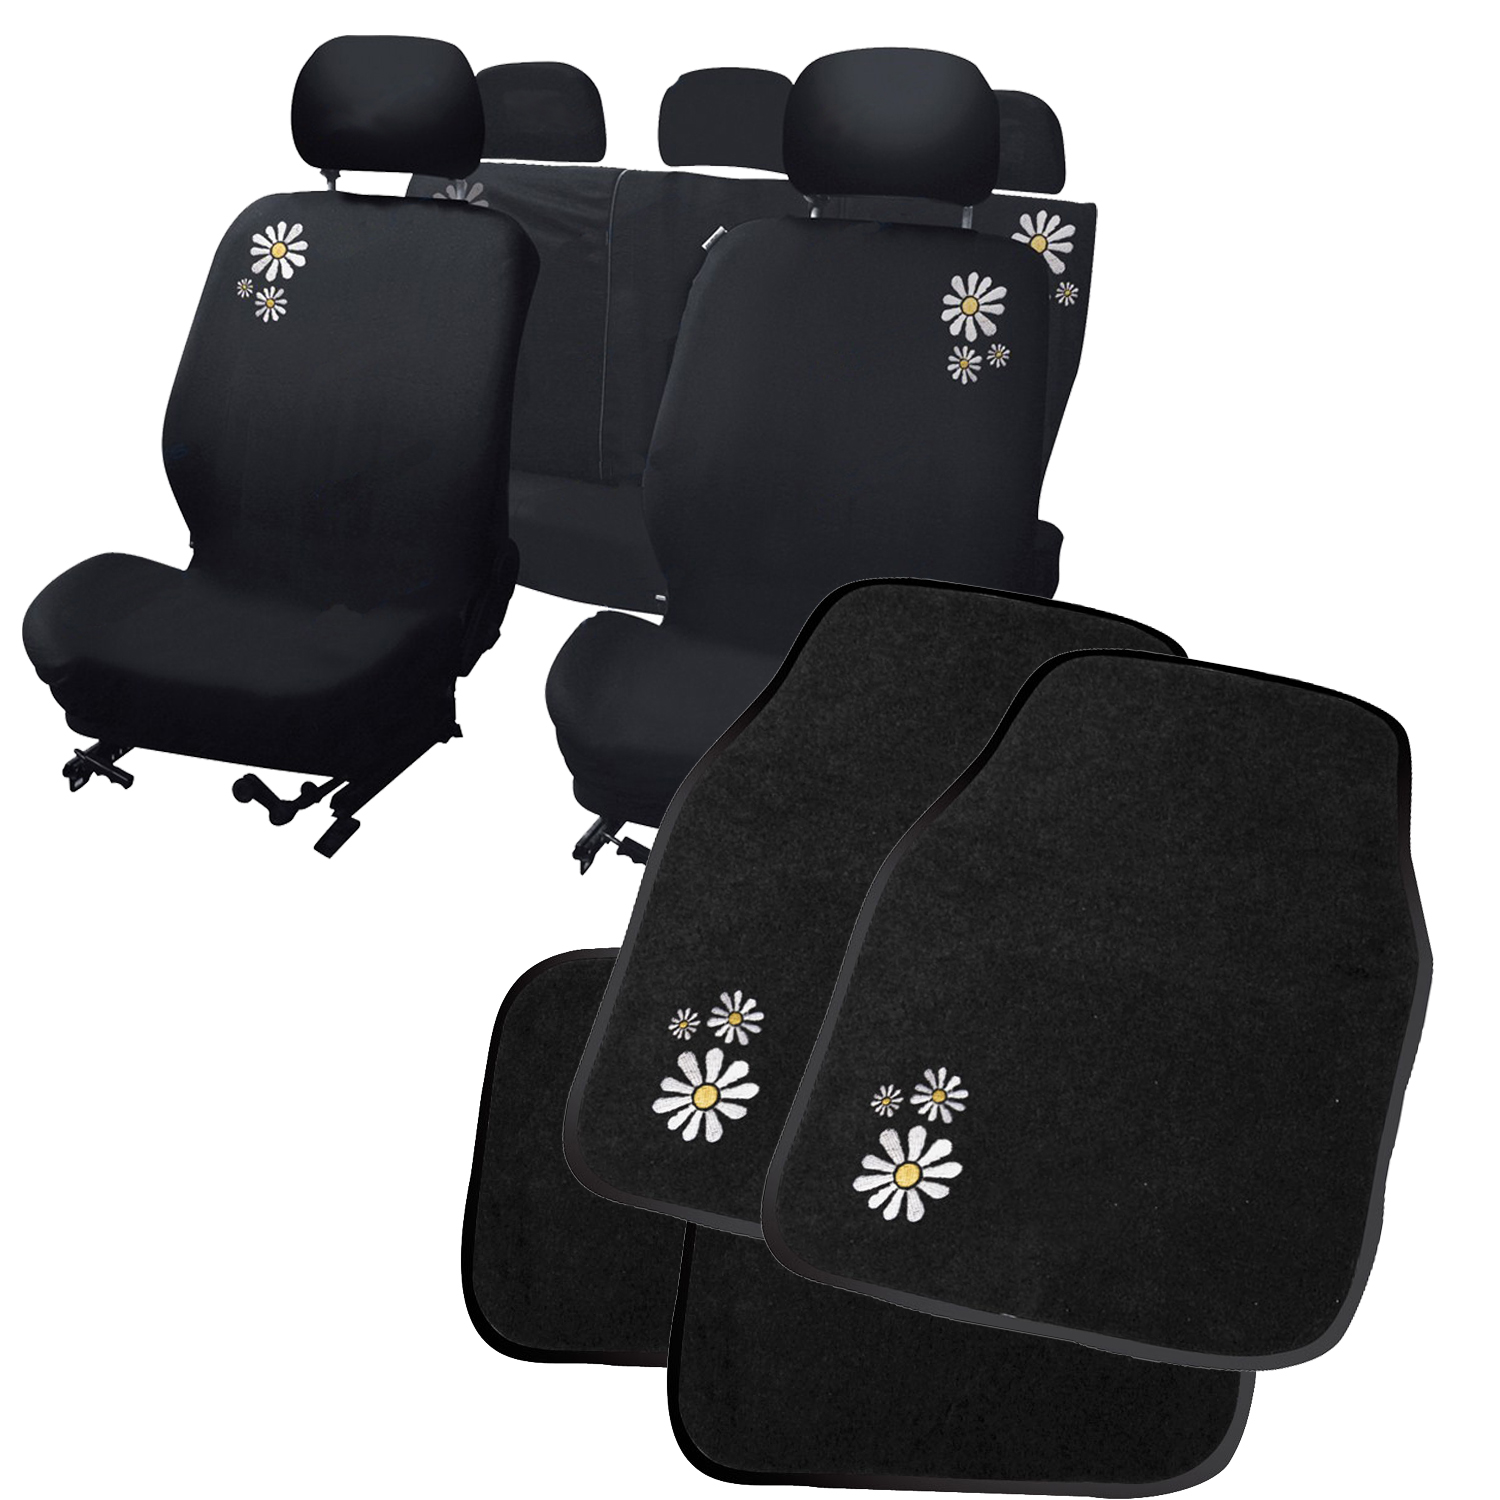 Carpoint Daisy Flower Car Seat Covers Amp Floor Mat Set